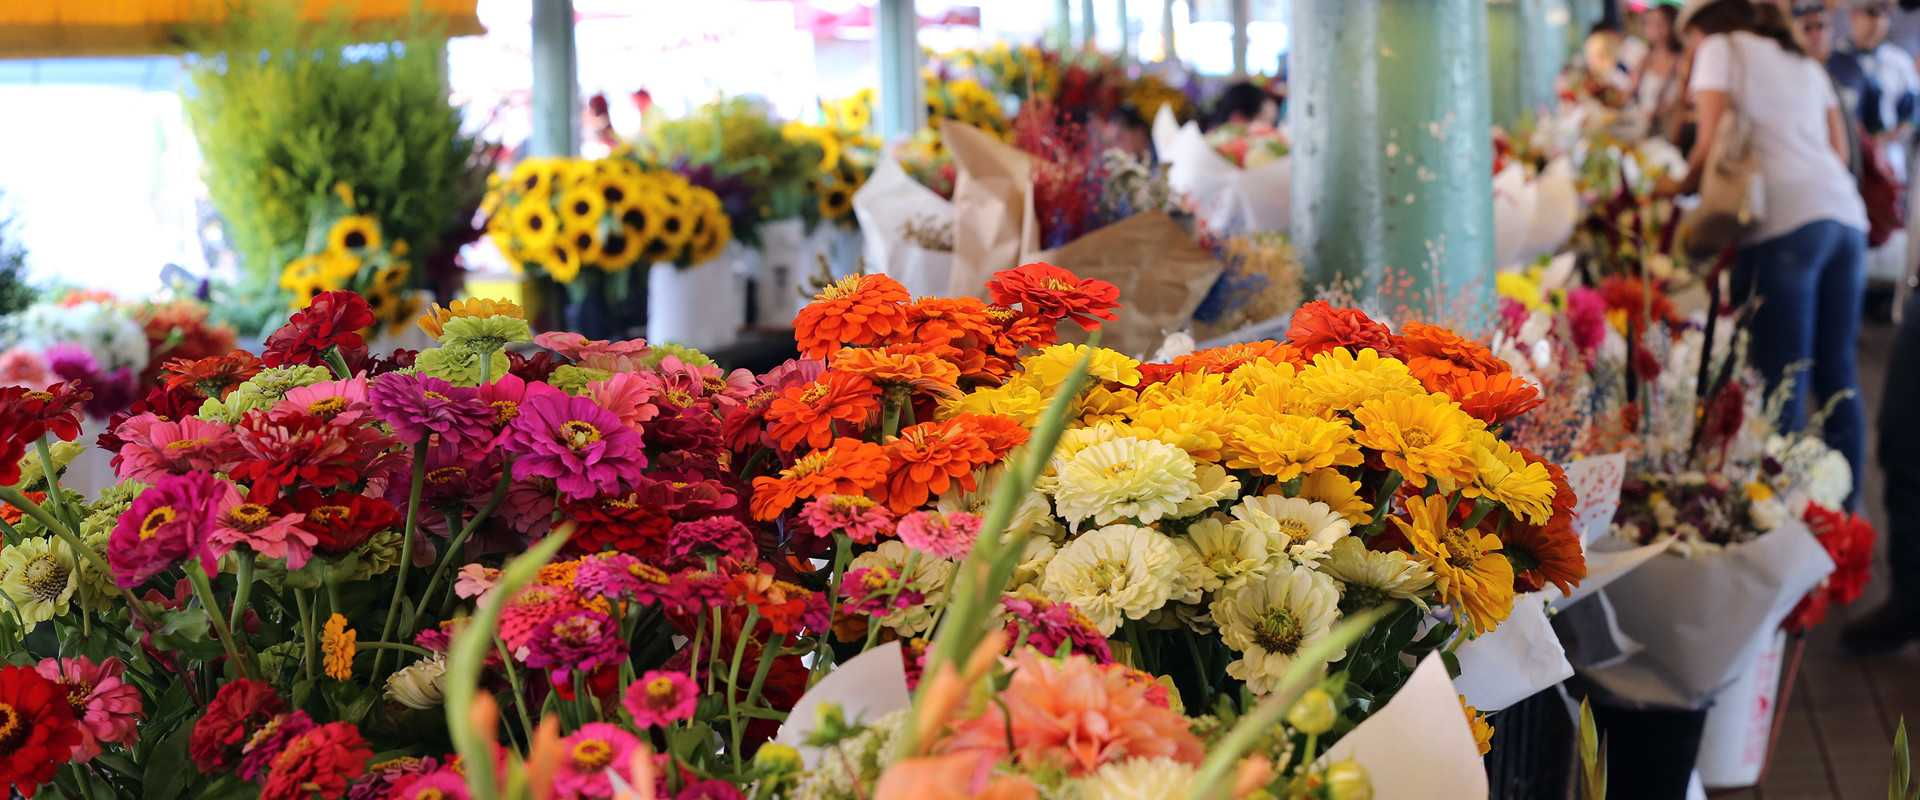 Local Market Flowers